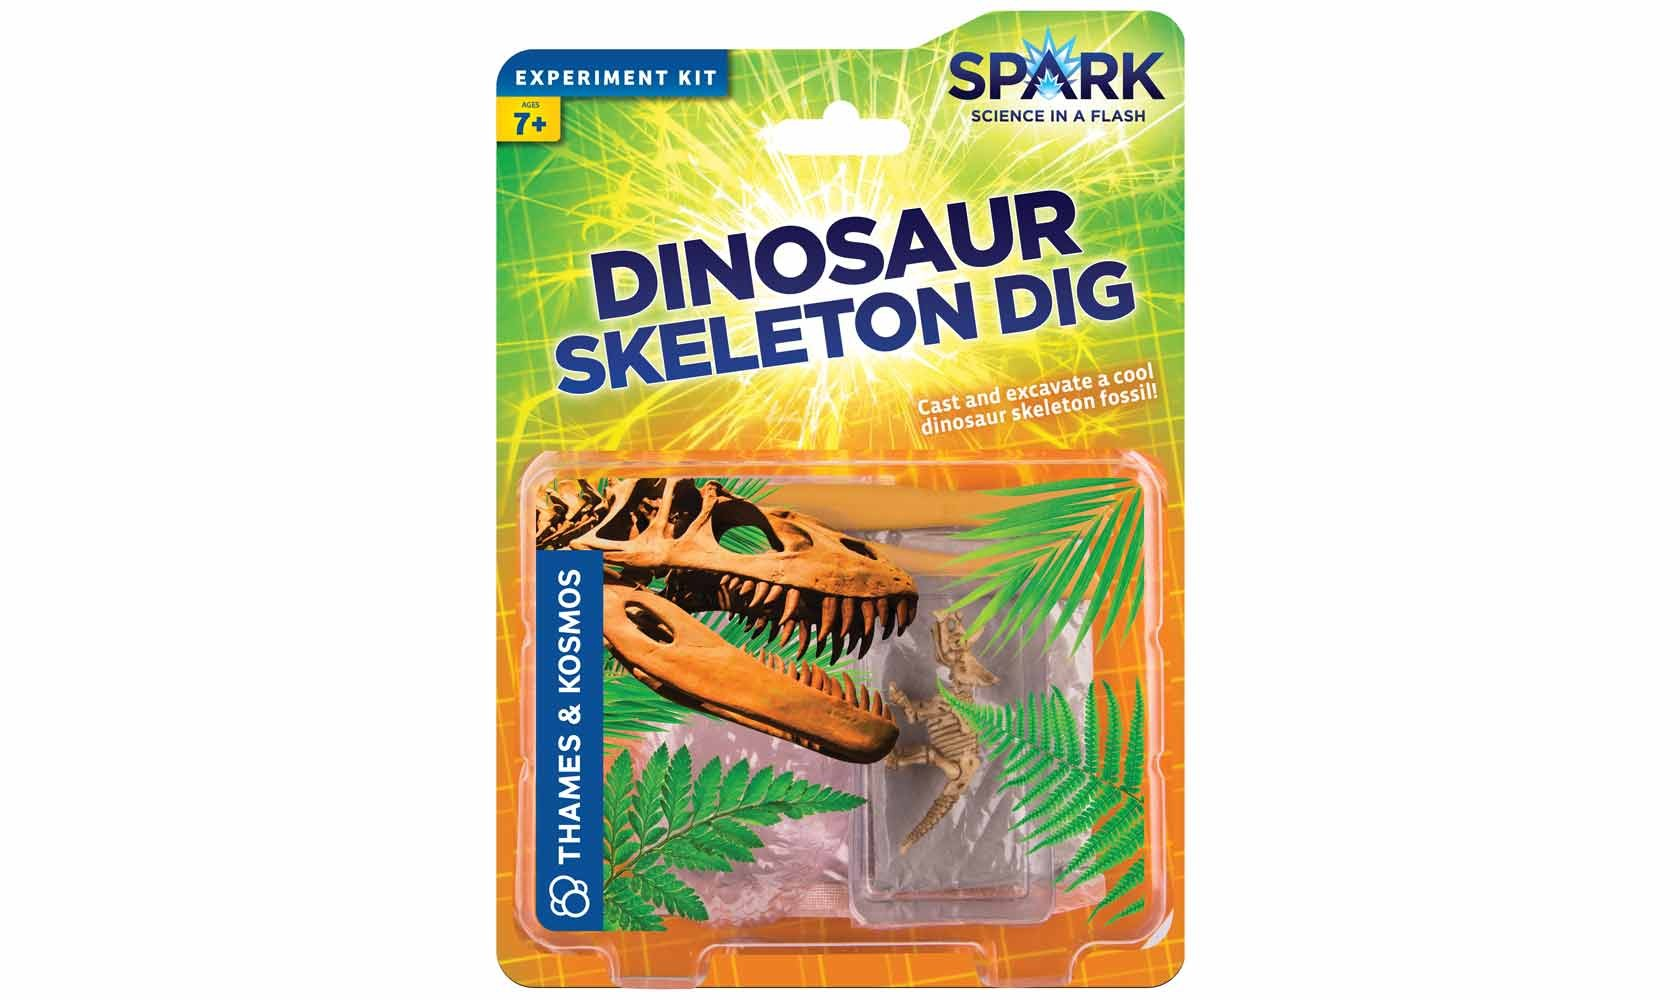 Dinosaur Skeleton Dig By Spark Science